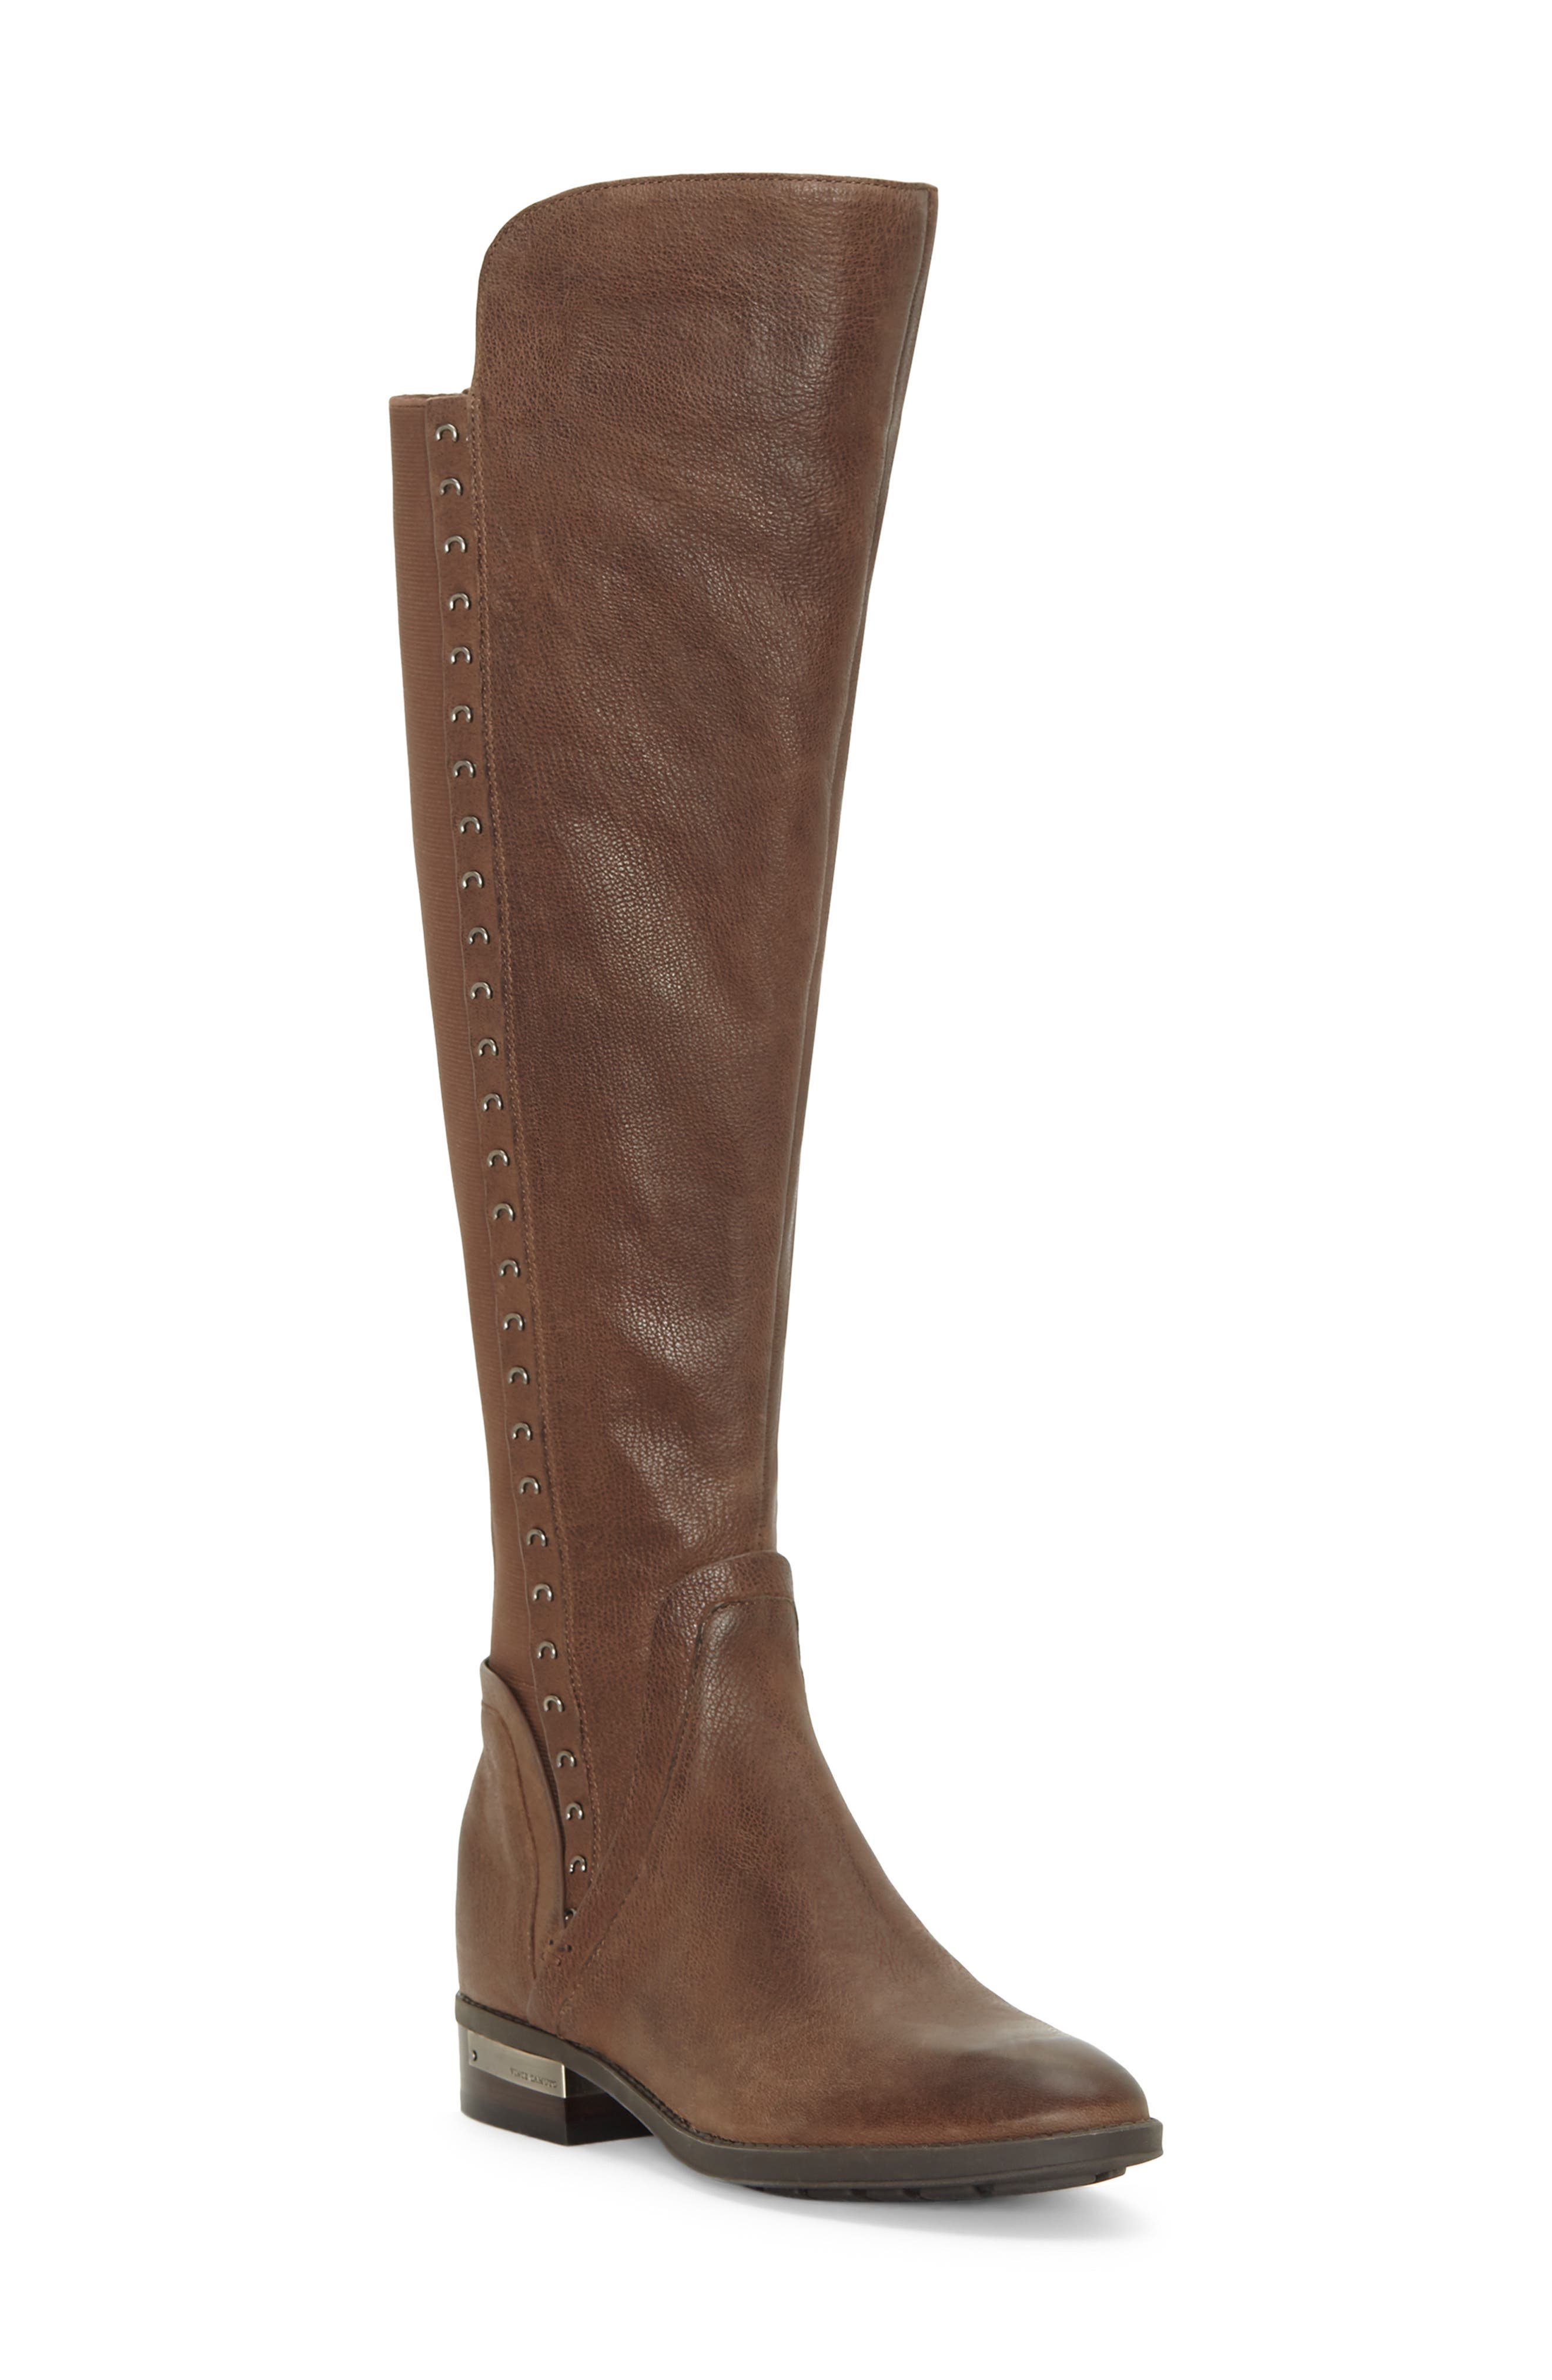 Vince Camuto Pardonal Over-The-Knee Boot, Brown